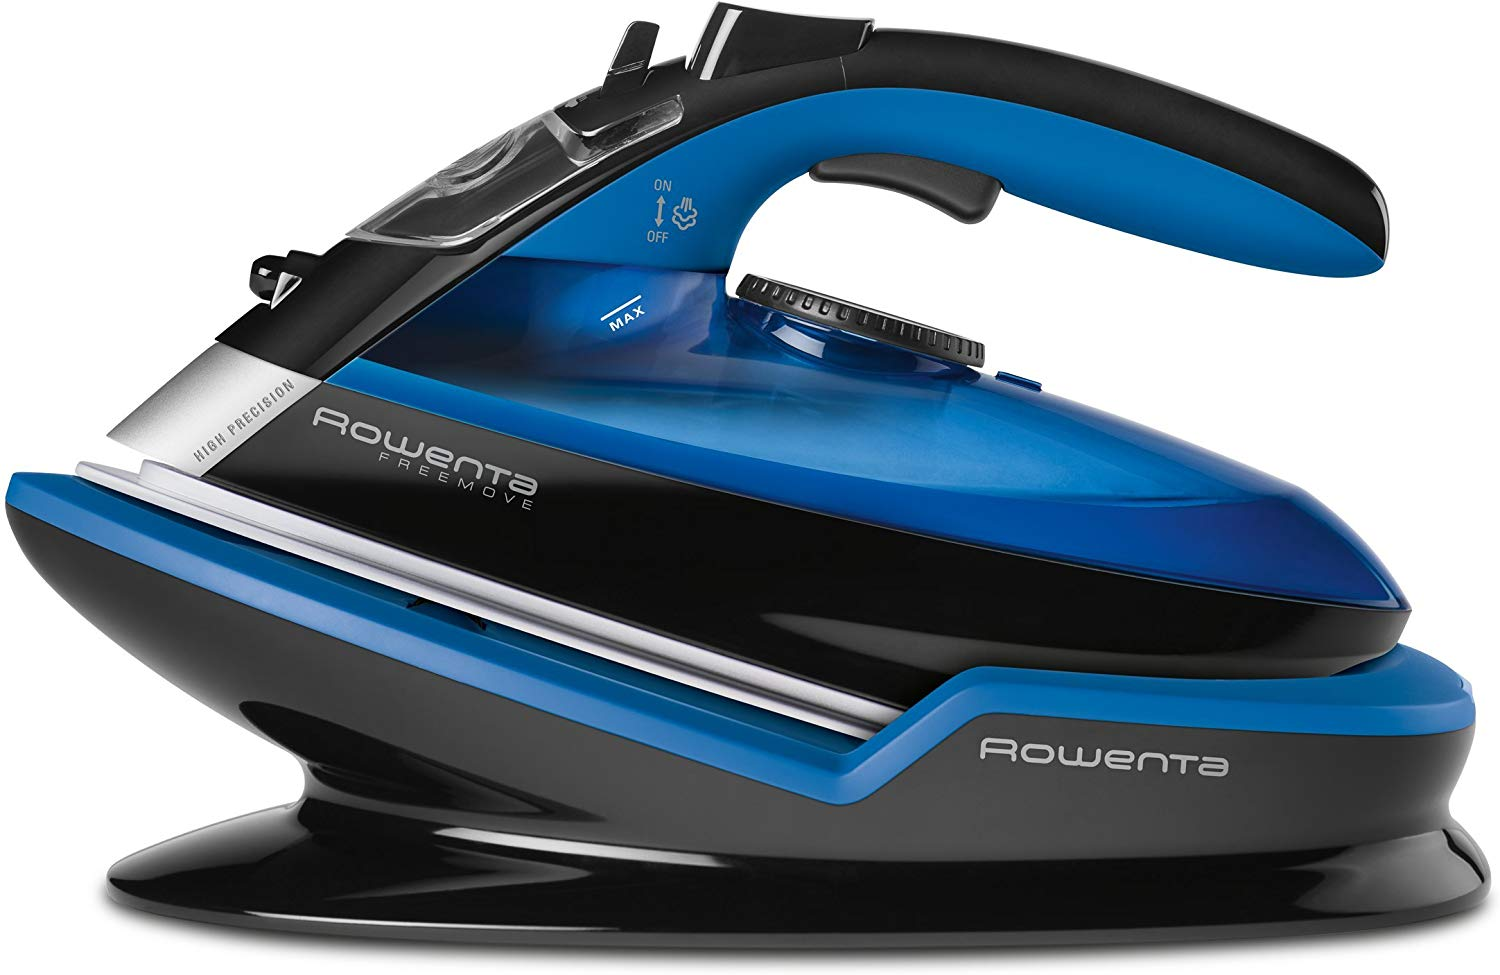 Rowenta Freemove Cordless Auto Off 400-Holes Stainless Steel Soleplate Steam Iron, Blue, 1 - 1830007108